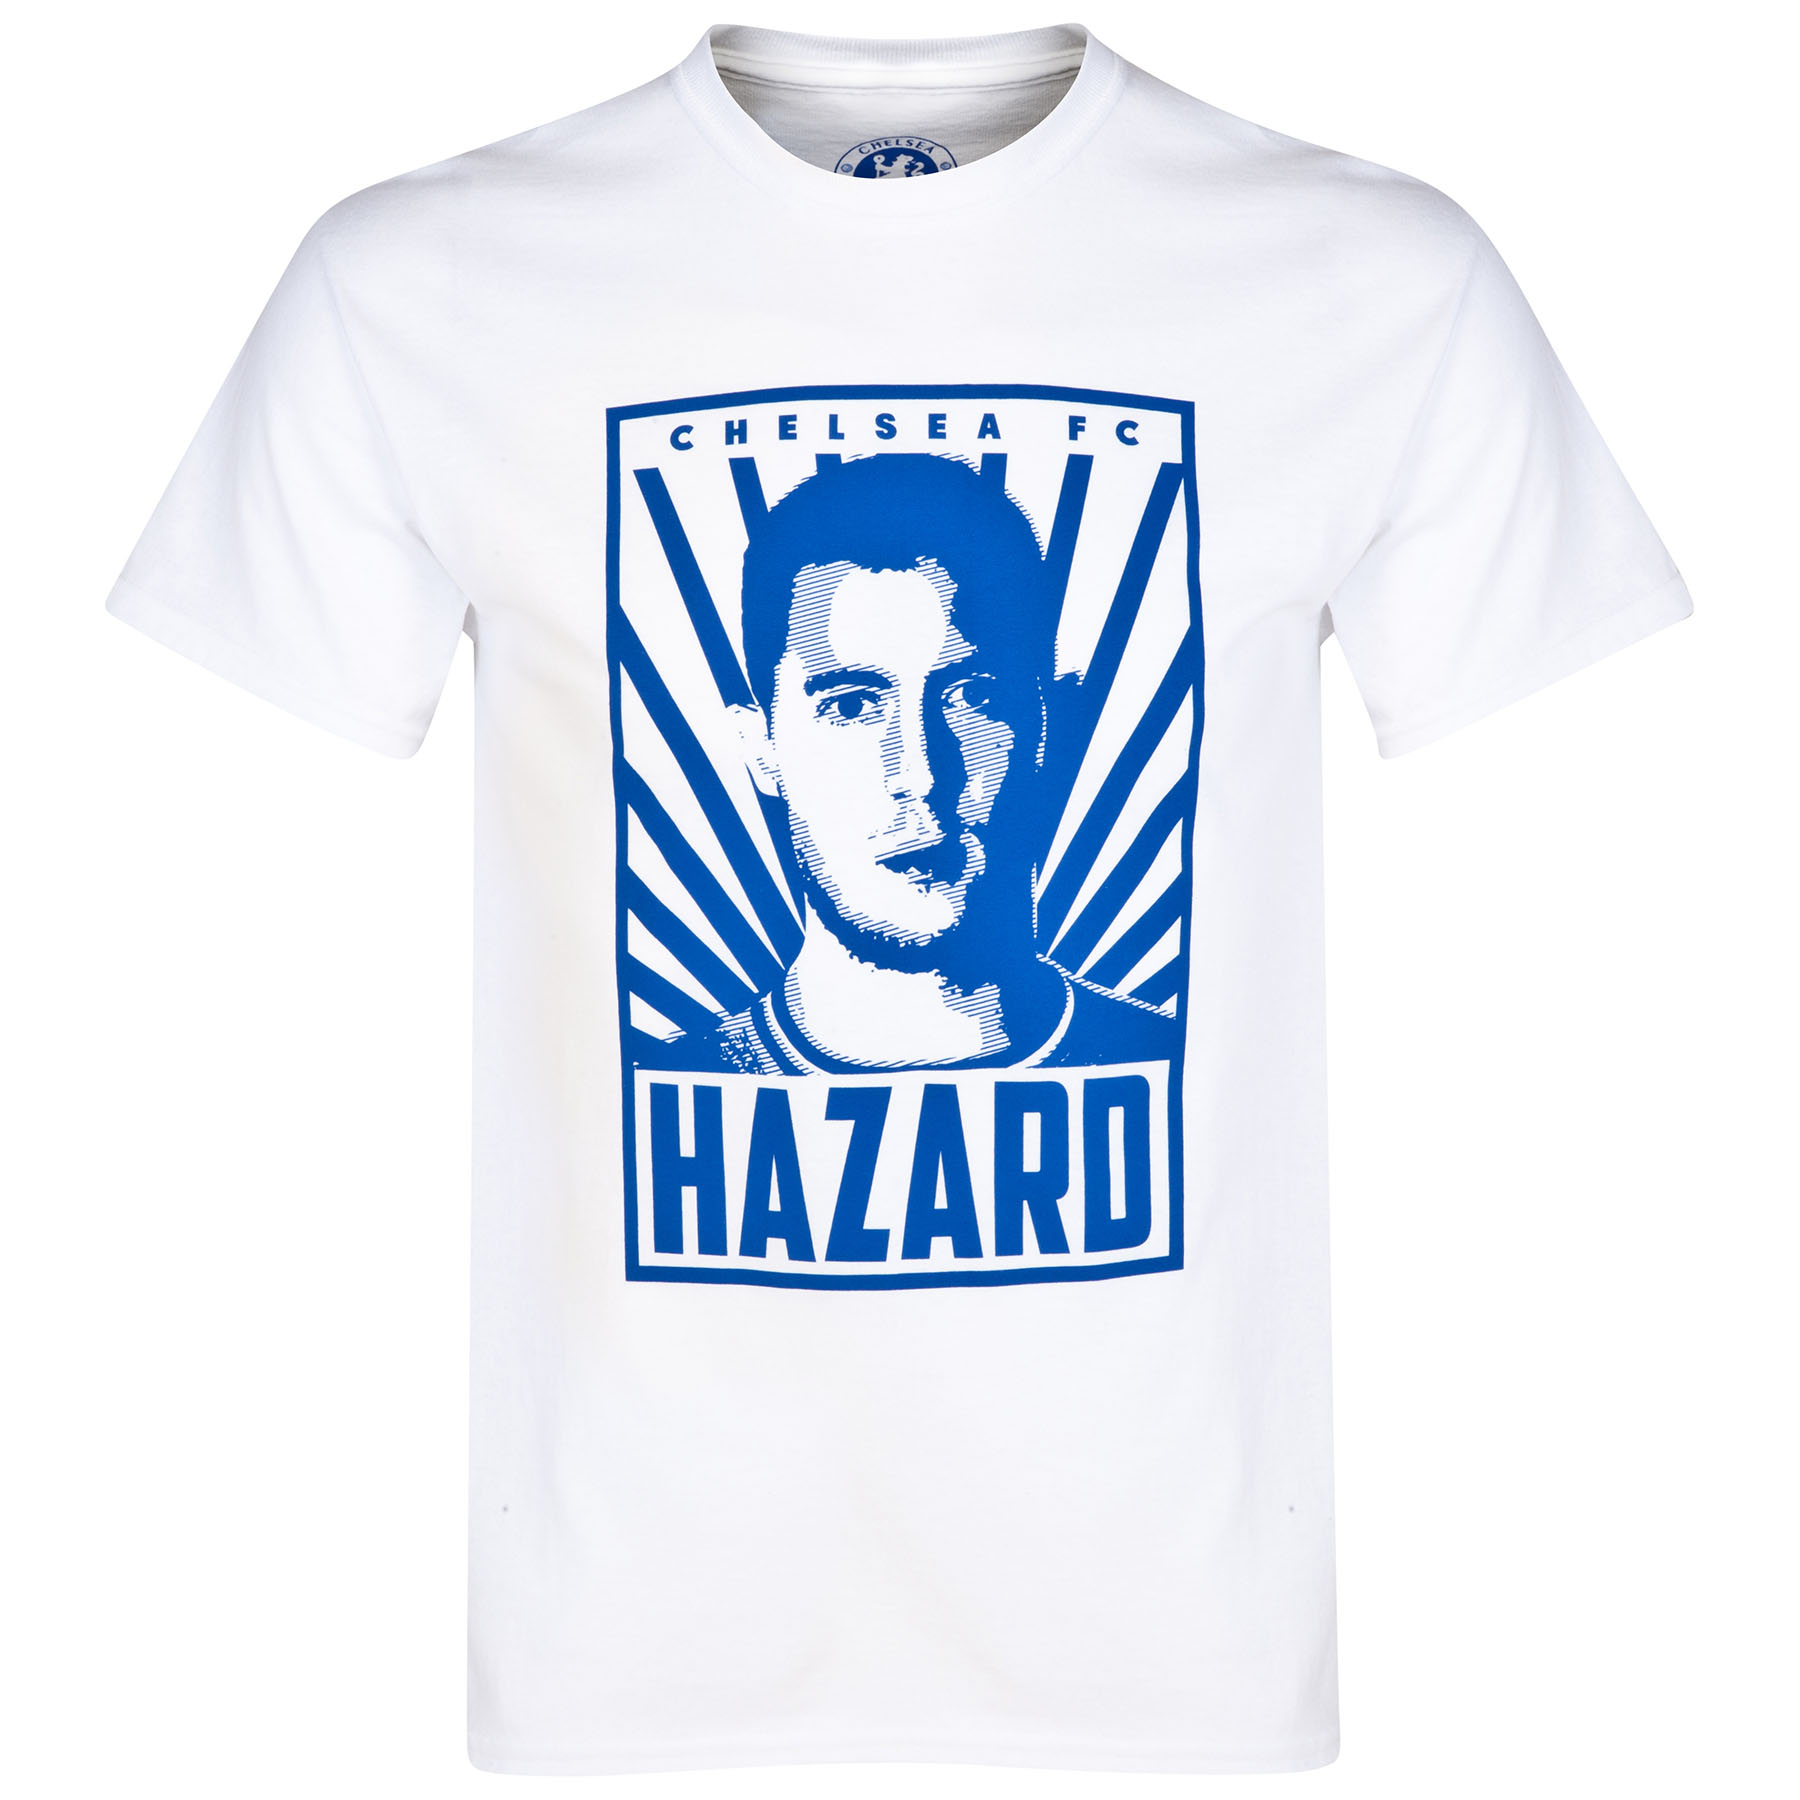 Chelsea Hazard T-Shirt - White - Mens